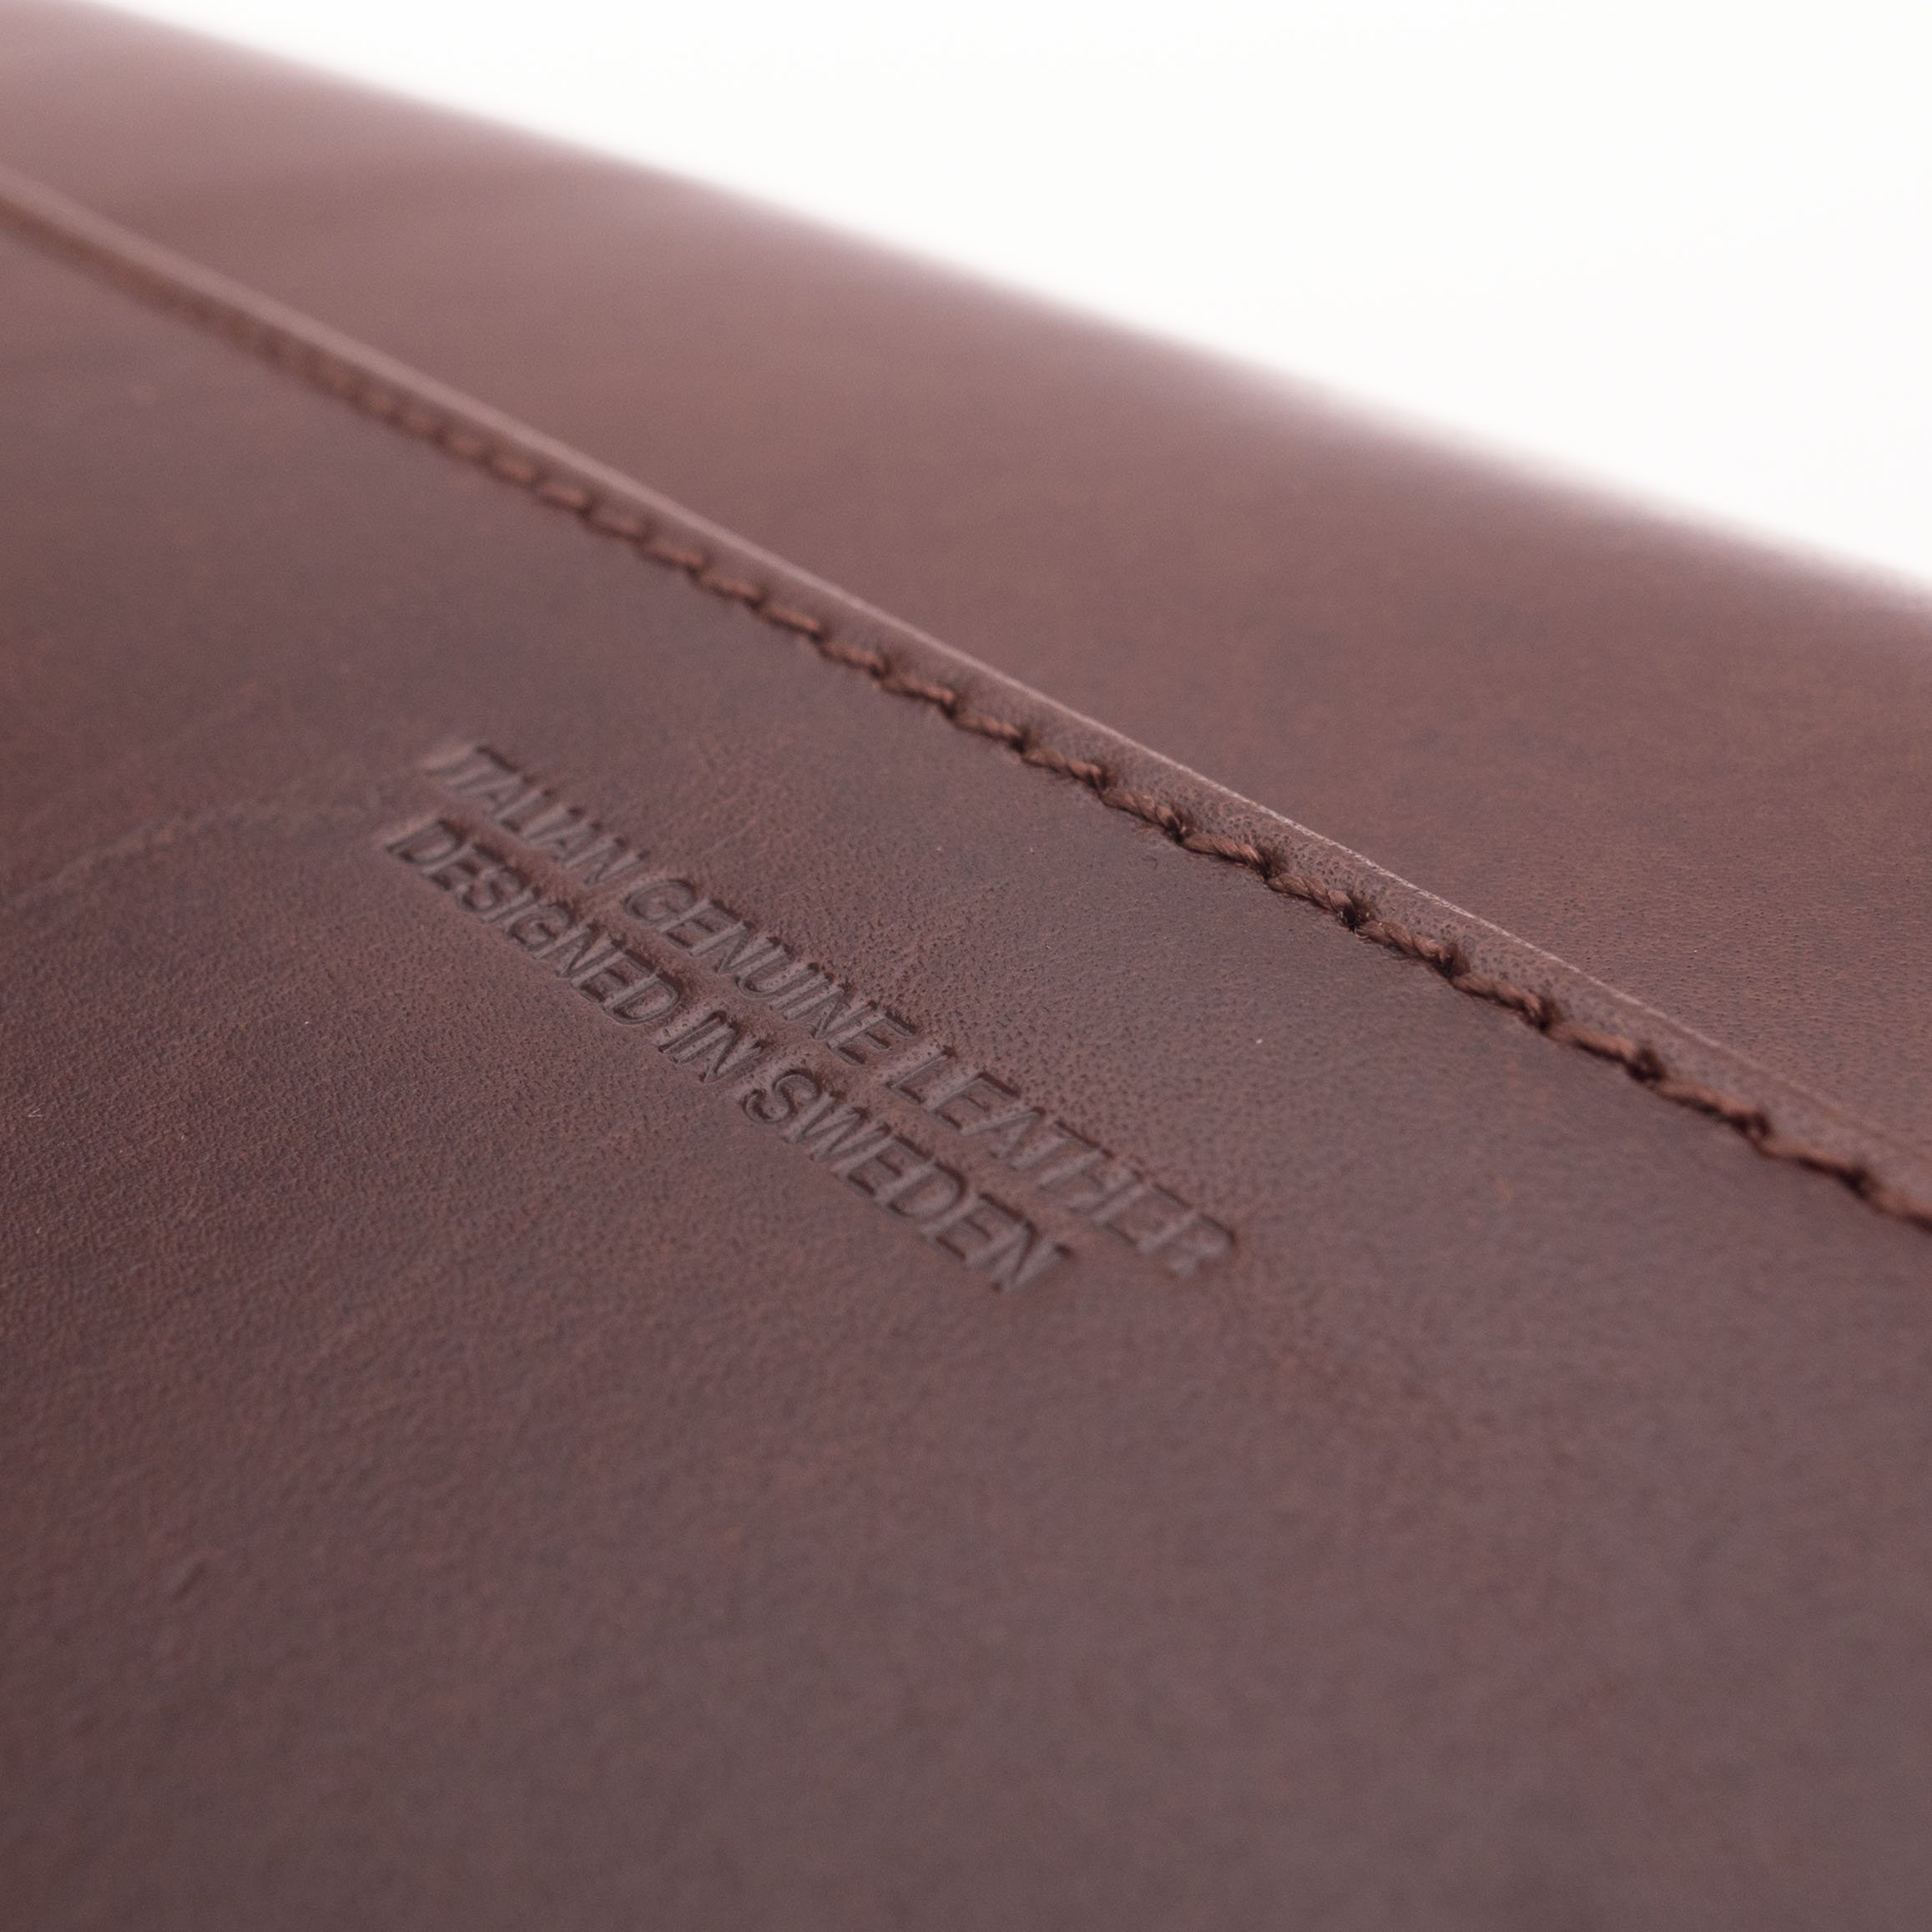 Kasper Maison Italian Leather Laptop Sleeve for 15 Inch Macbook Pro 2016 / 2017 Touch Bar – Designed Envelope Case for similar computer, notebook and ultrabook sizes - Signature Gift Included by Kasper Maison (Image #7)